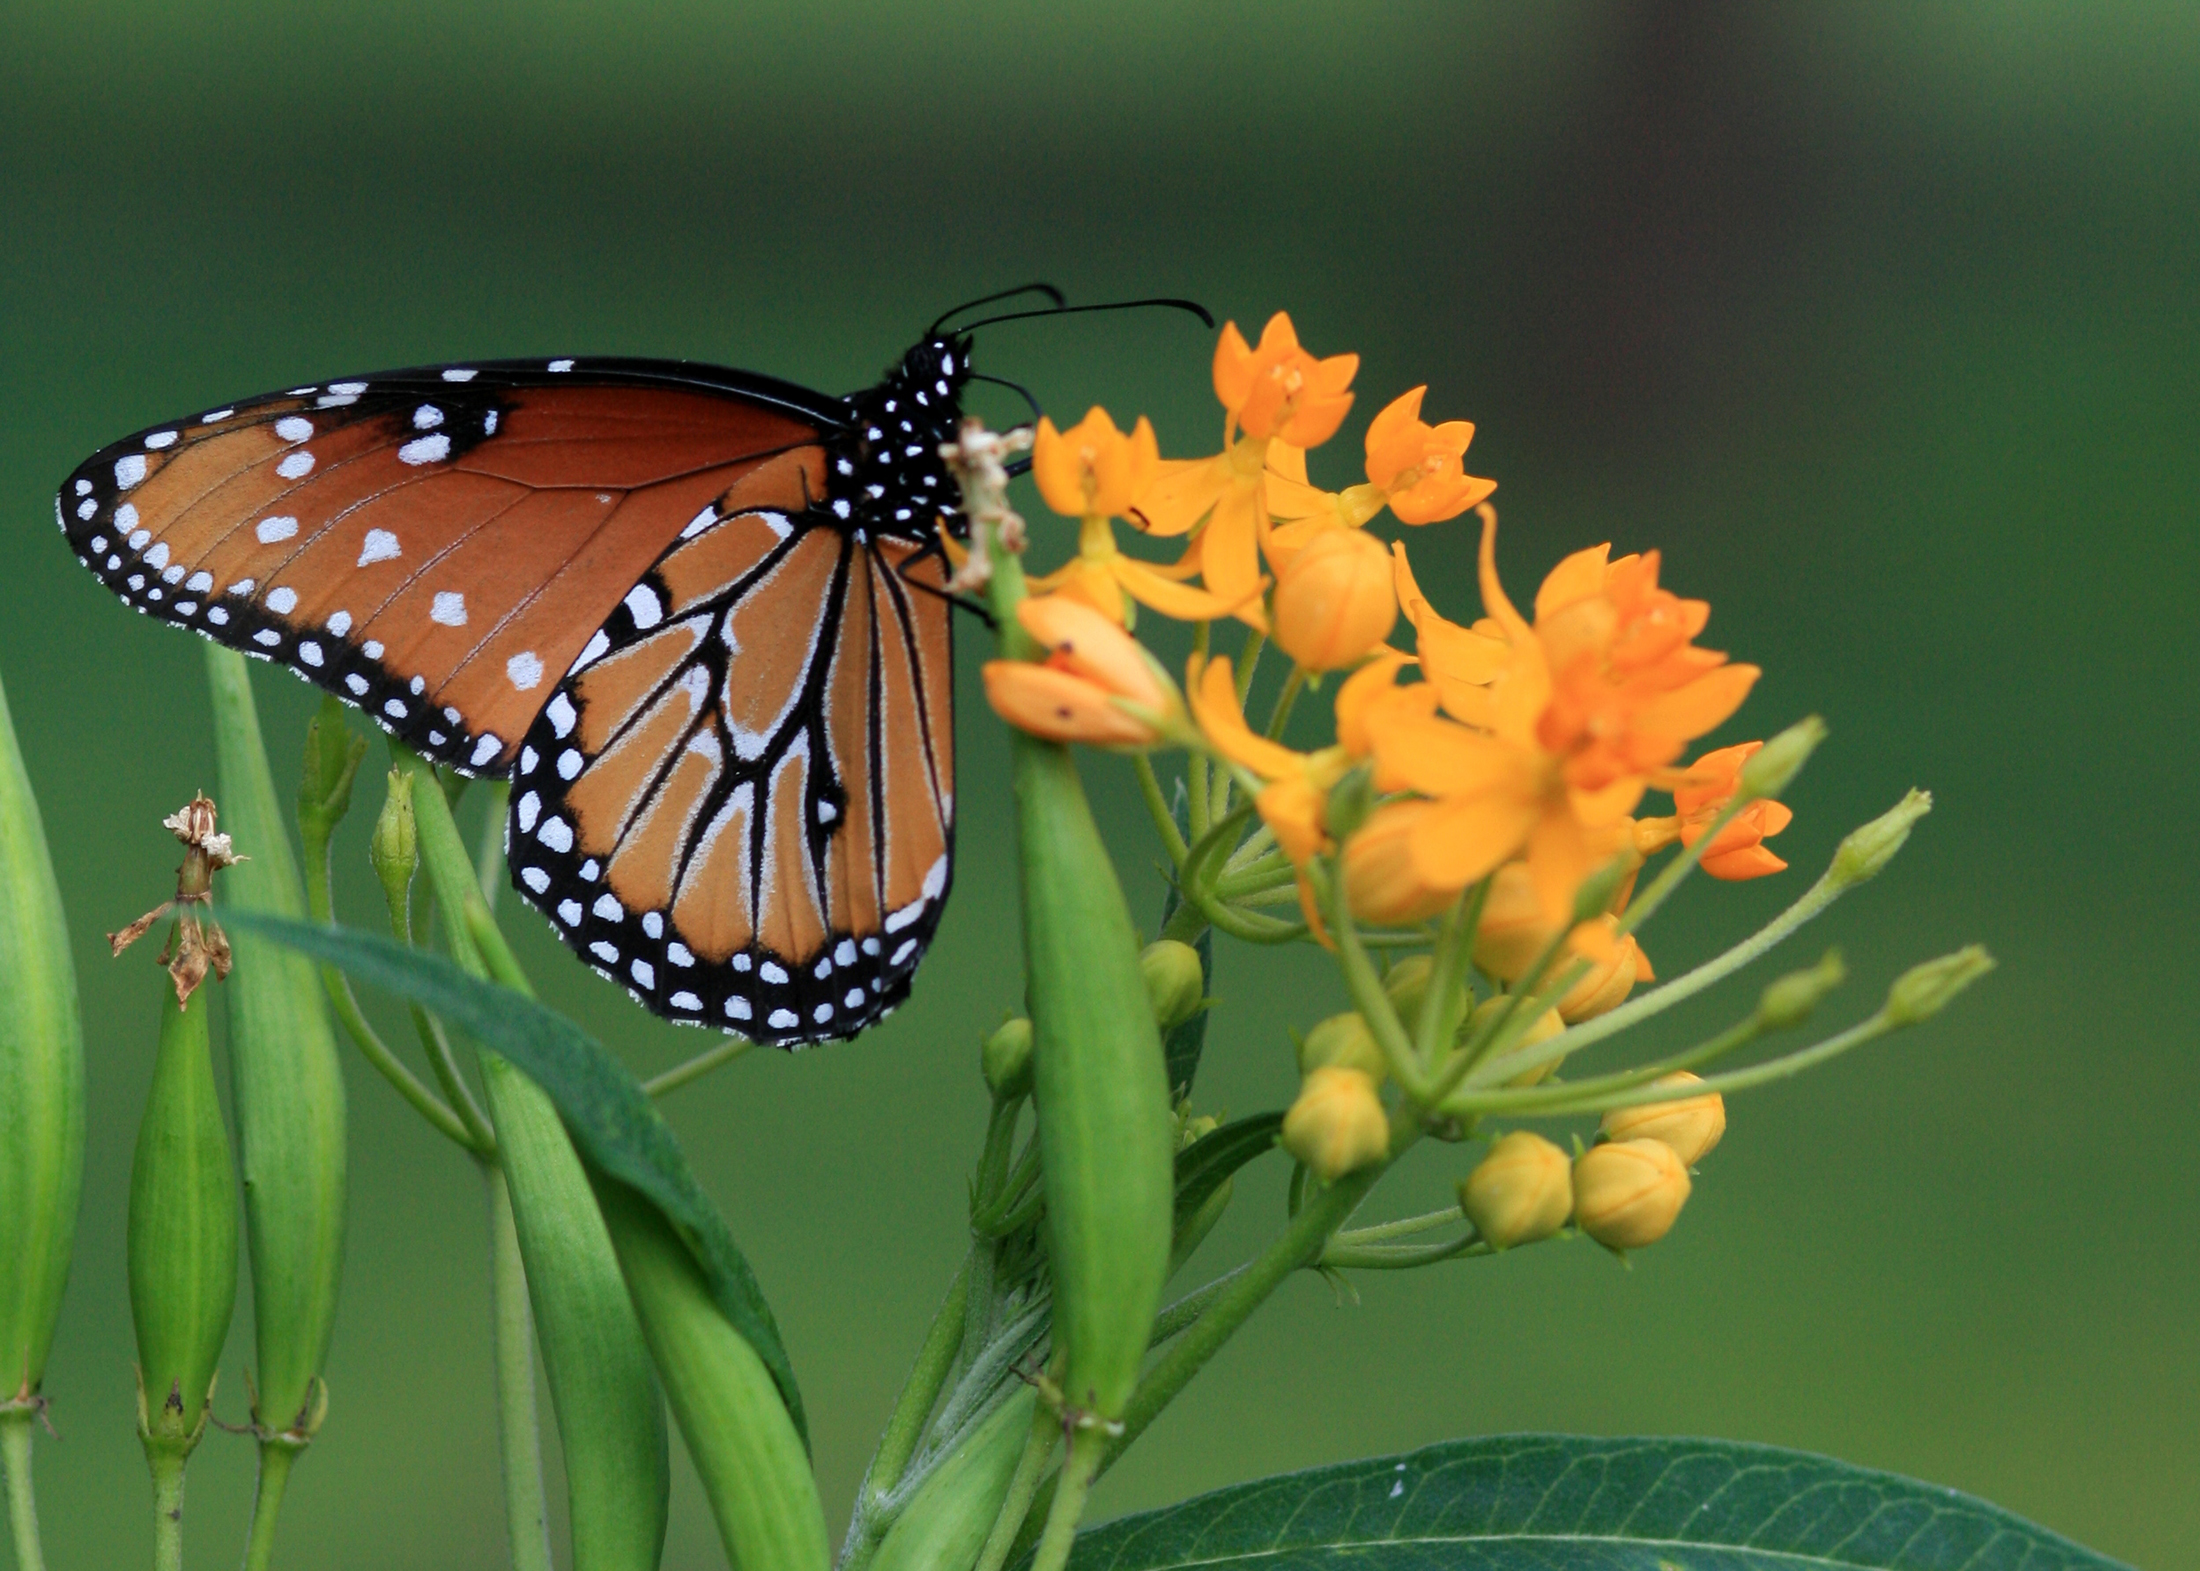 Eastern monarch butterfly population plunges below extinction threshold